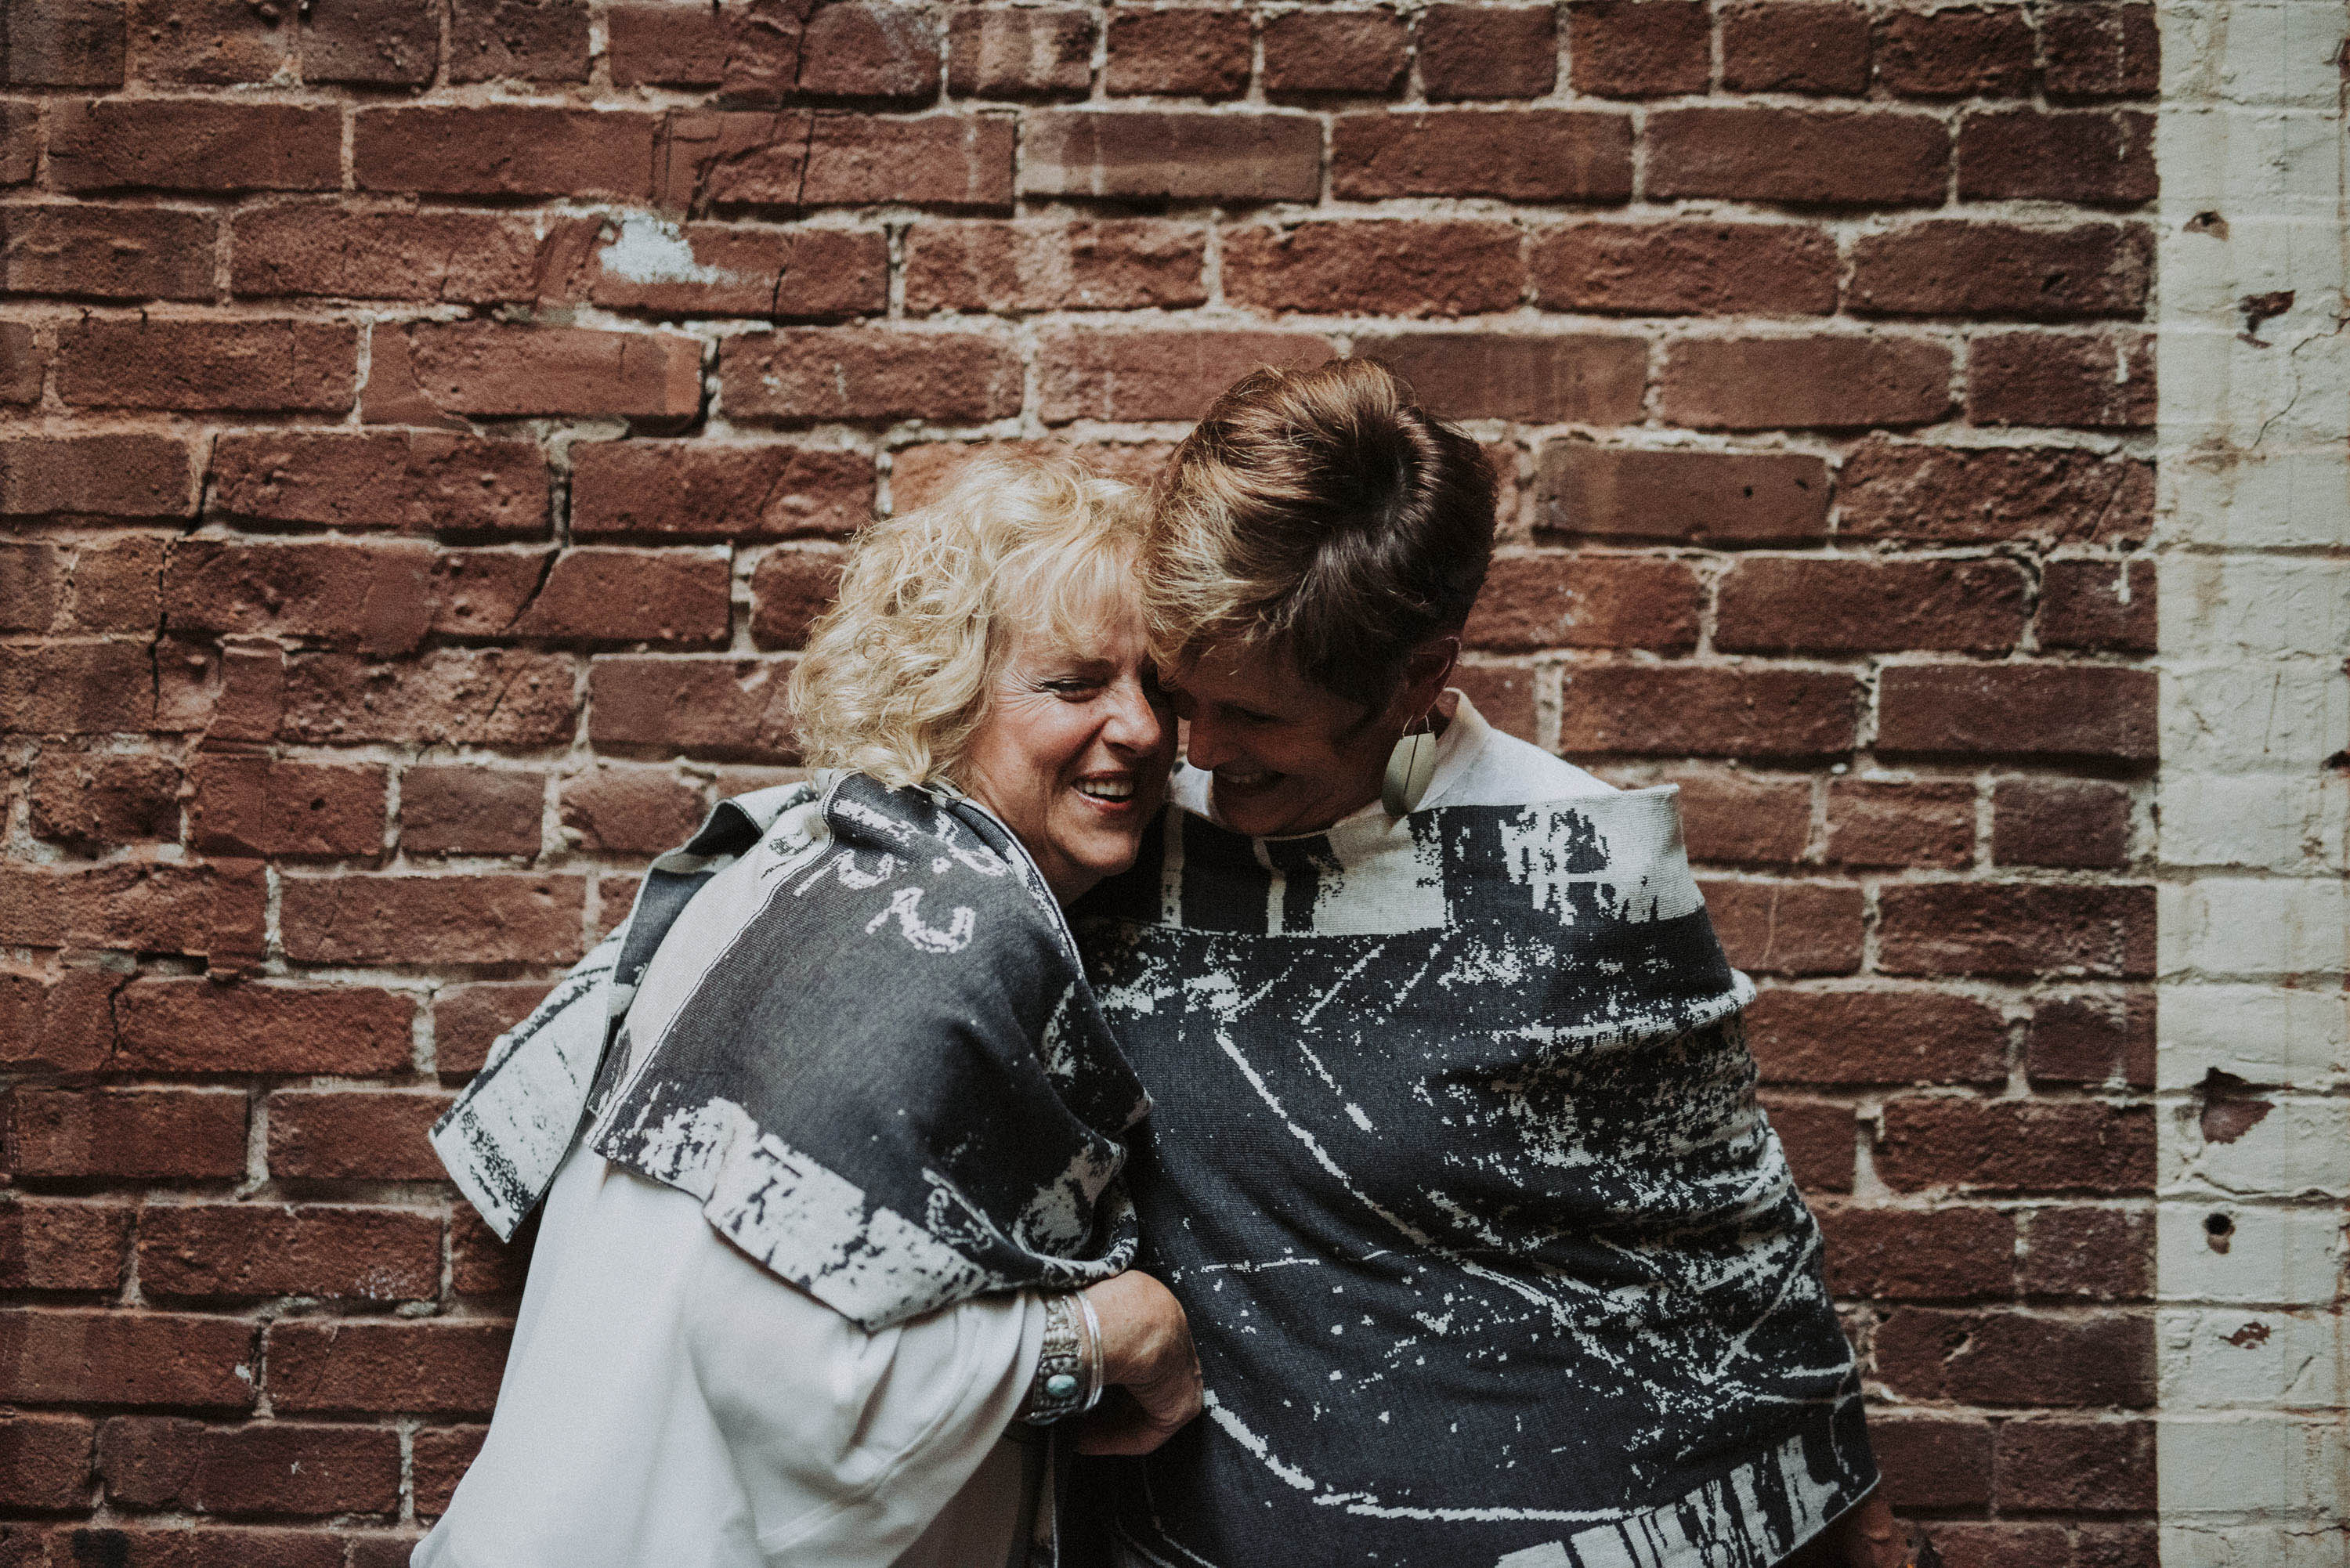 Two women wear contemporary knitwear in charcoal grey and stone white, with abstract patterning